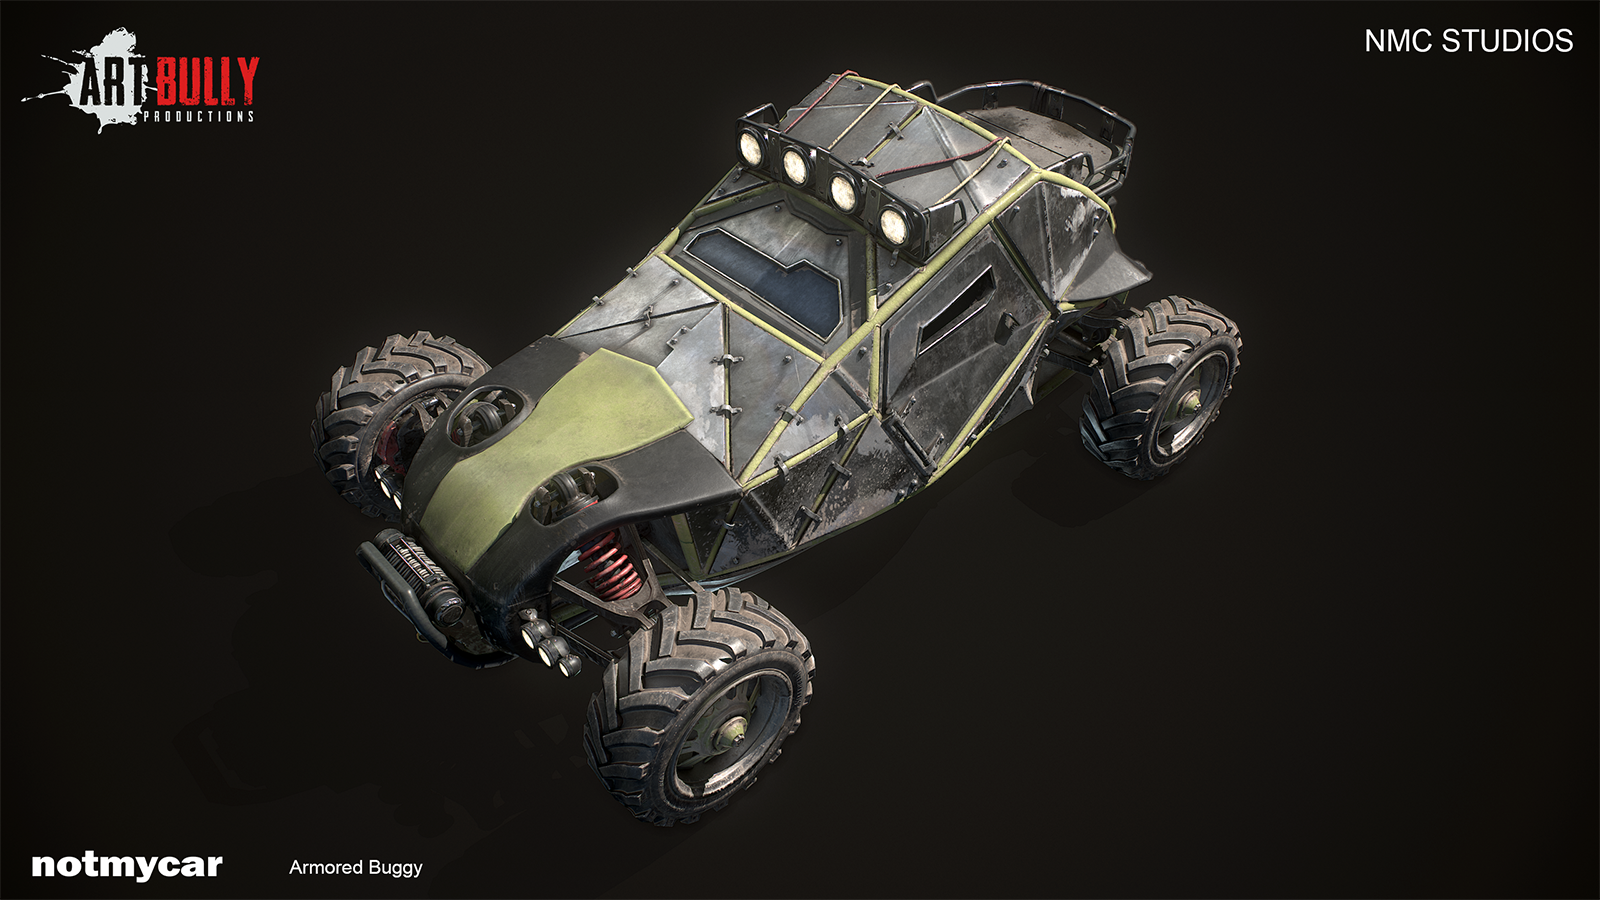 Artbully.co_NMC_Armored_Buggy_Top_Low.png